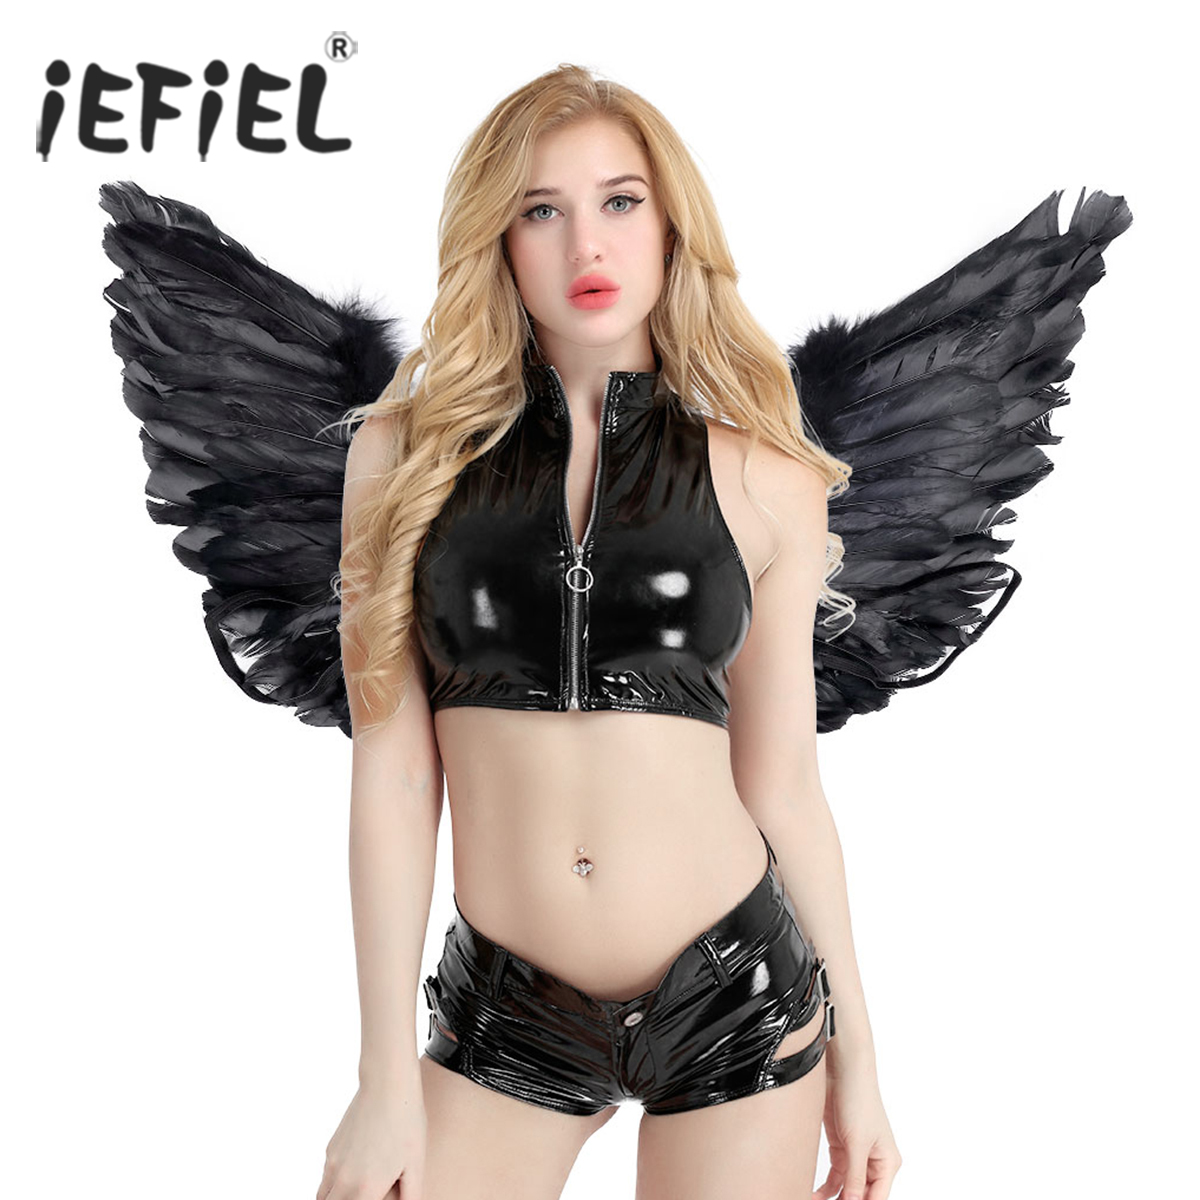 Angel Fairy Real Feather Wings for Dance Party Cosplay Costume Stage Performance Masquerade Carnival Fancy Dress Accessories